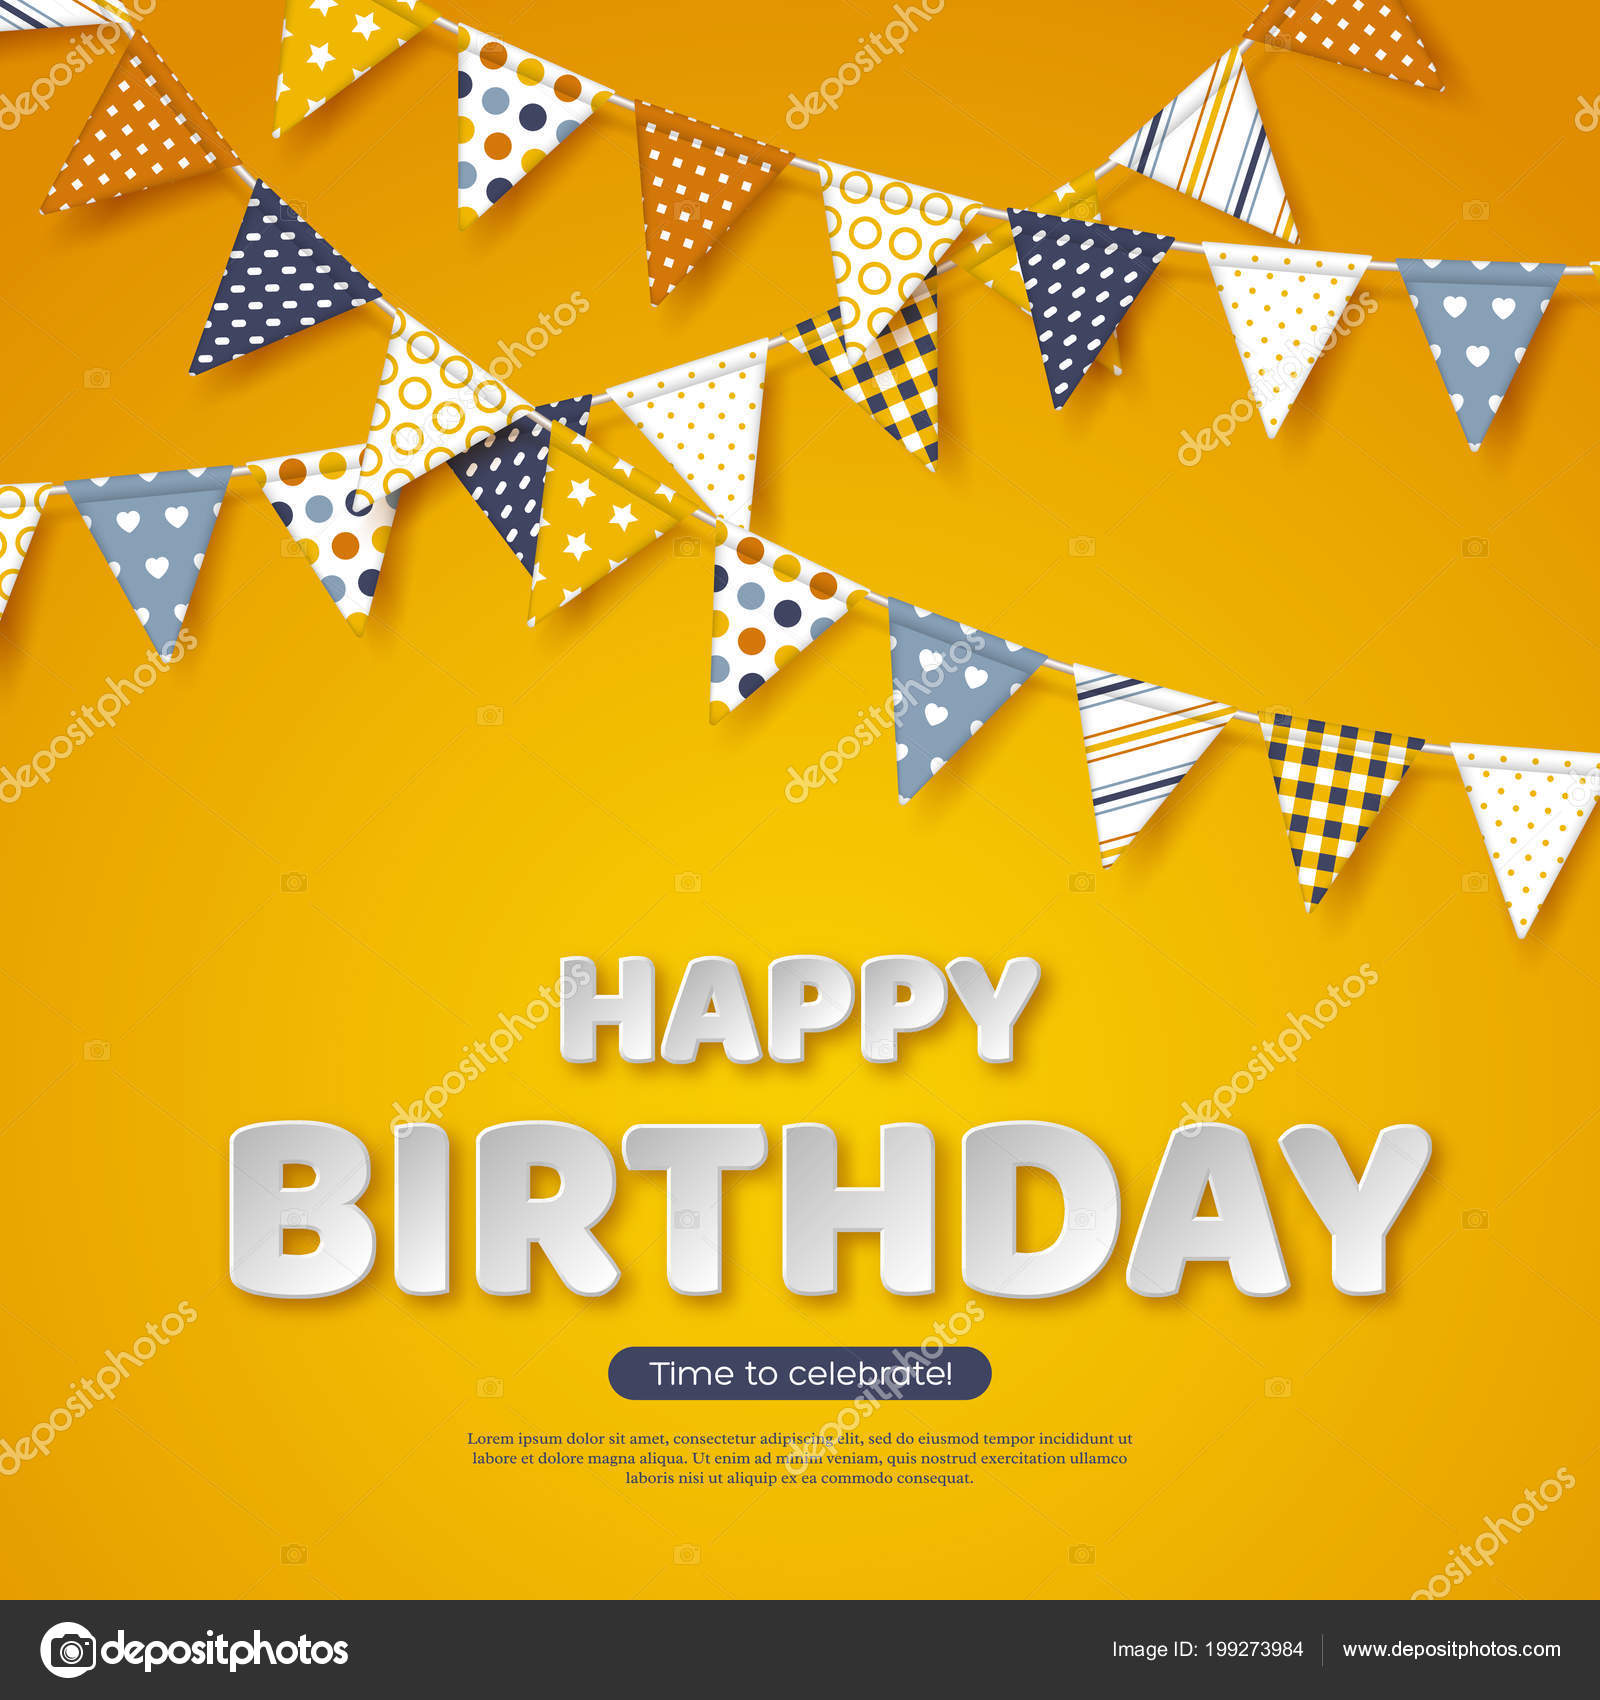 Happy Birthday Greeting Design Paper Cut Style White Letters And